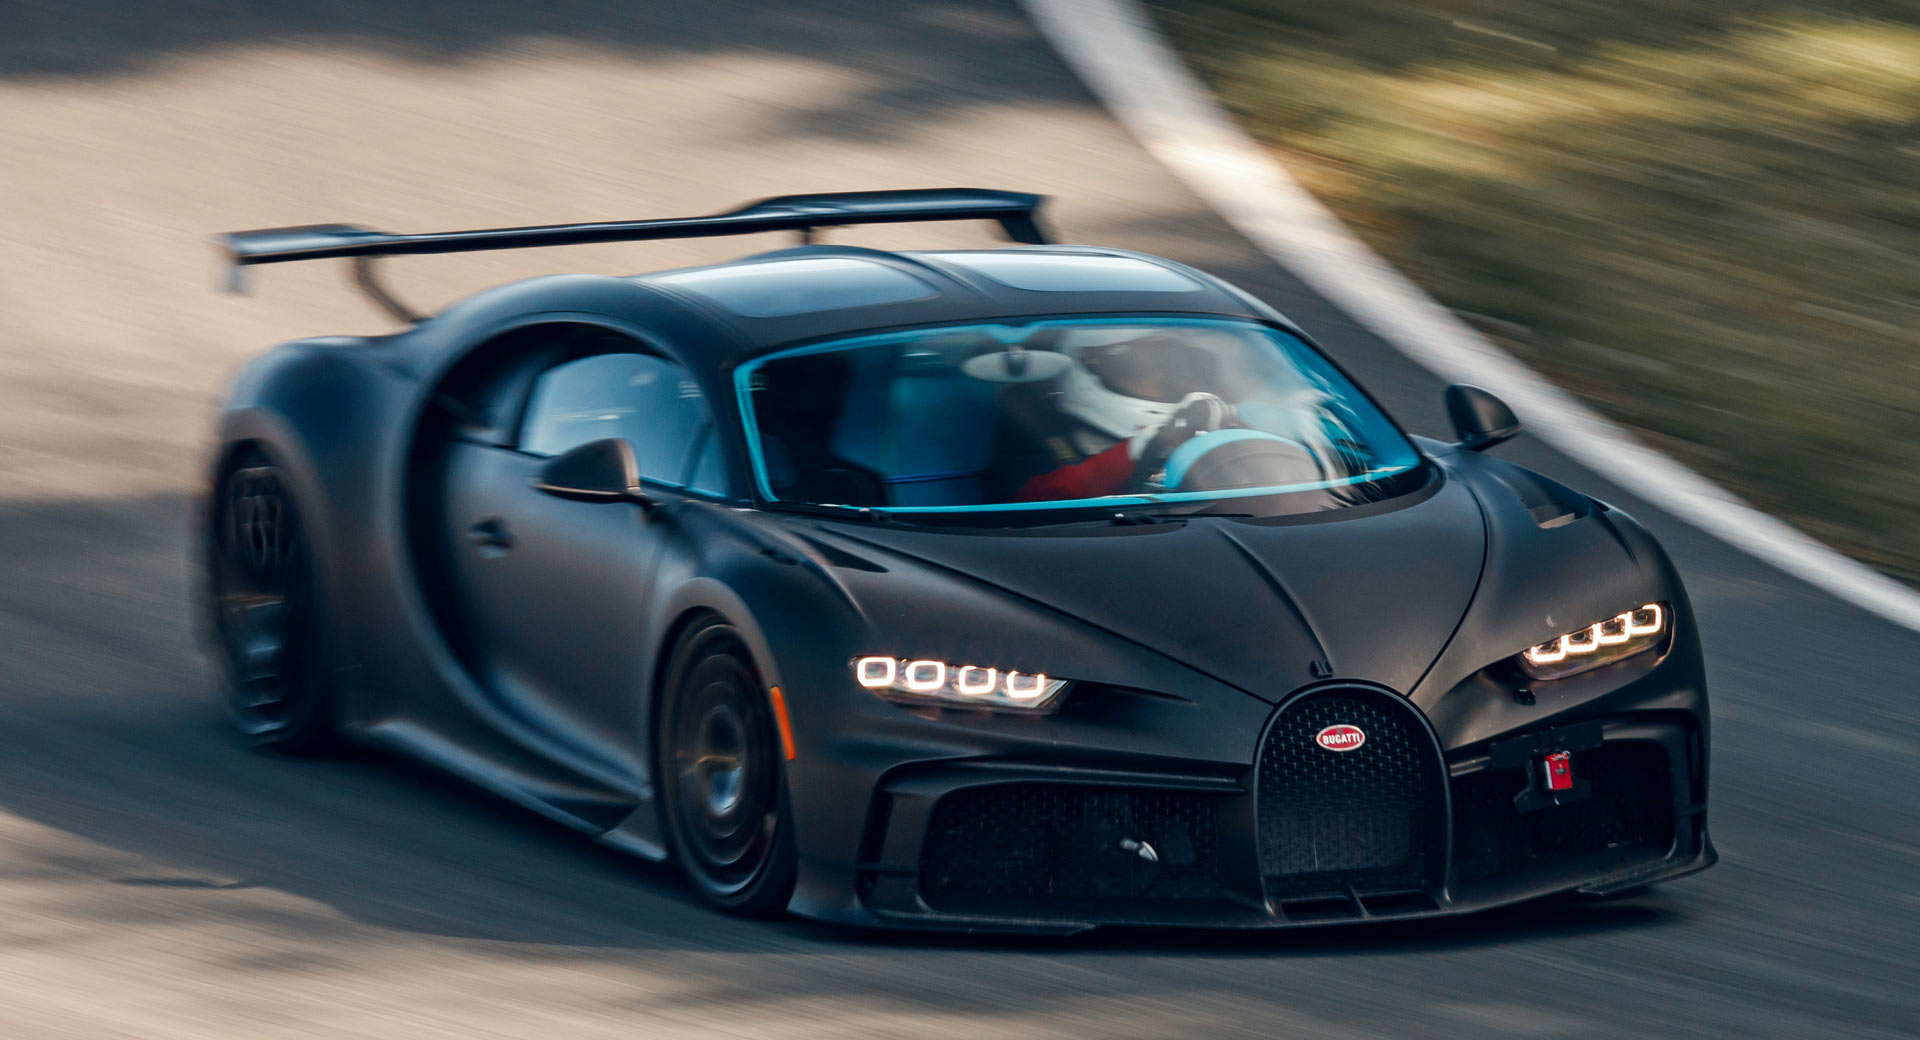 The Bugatti Chiron Pur Sport Is All Internal Combustion, All The Money, and Not That Bad On Gas!